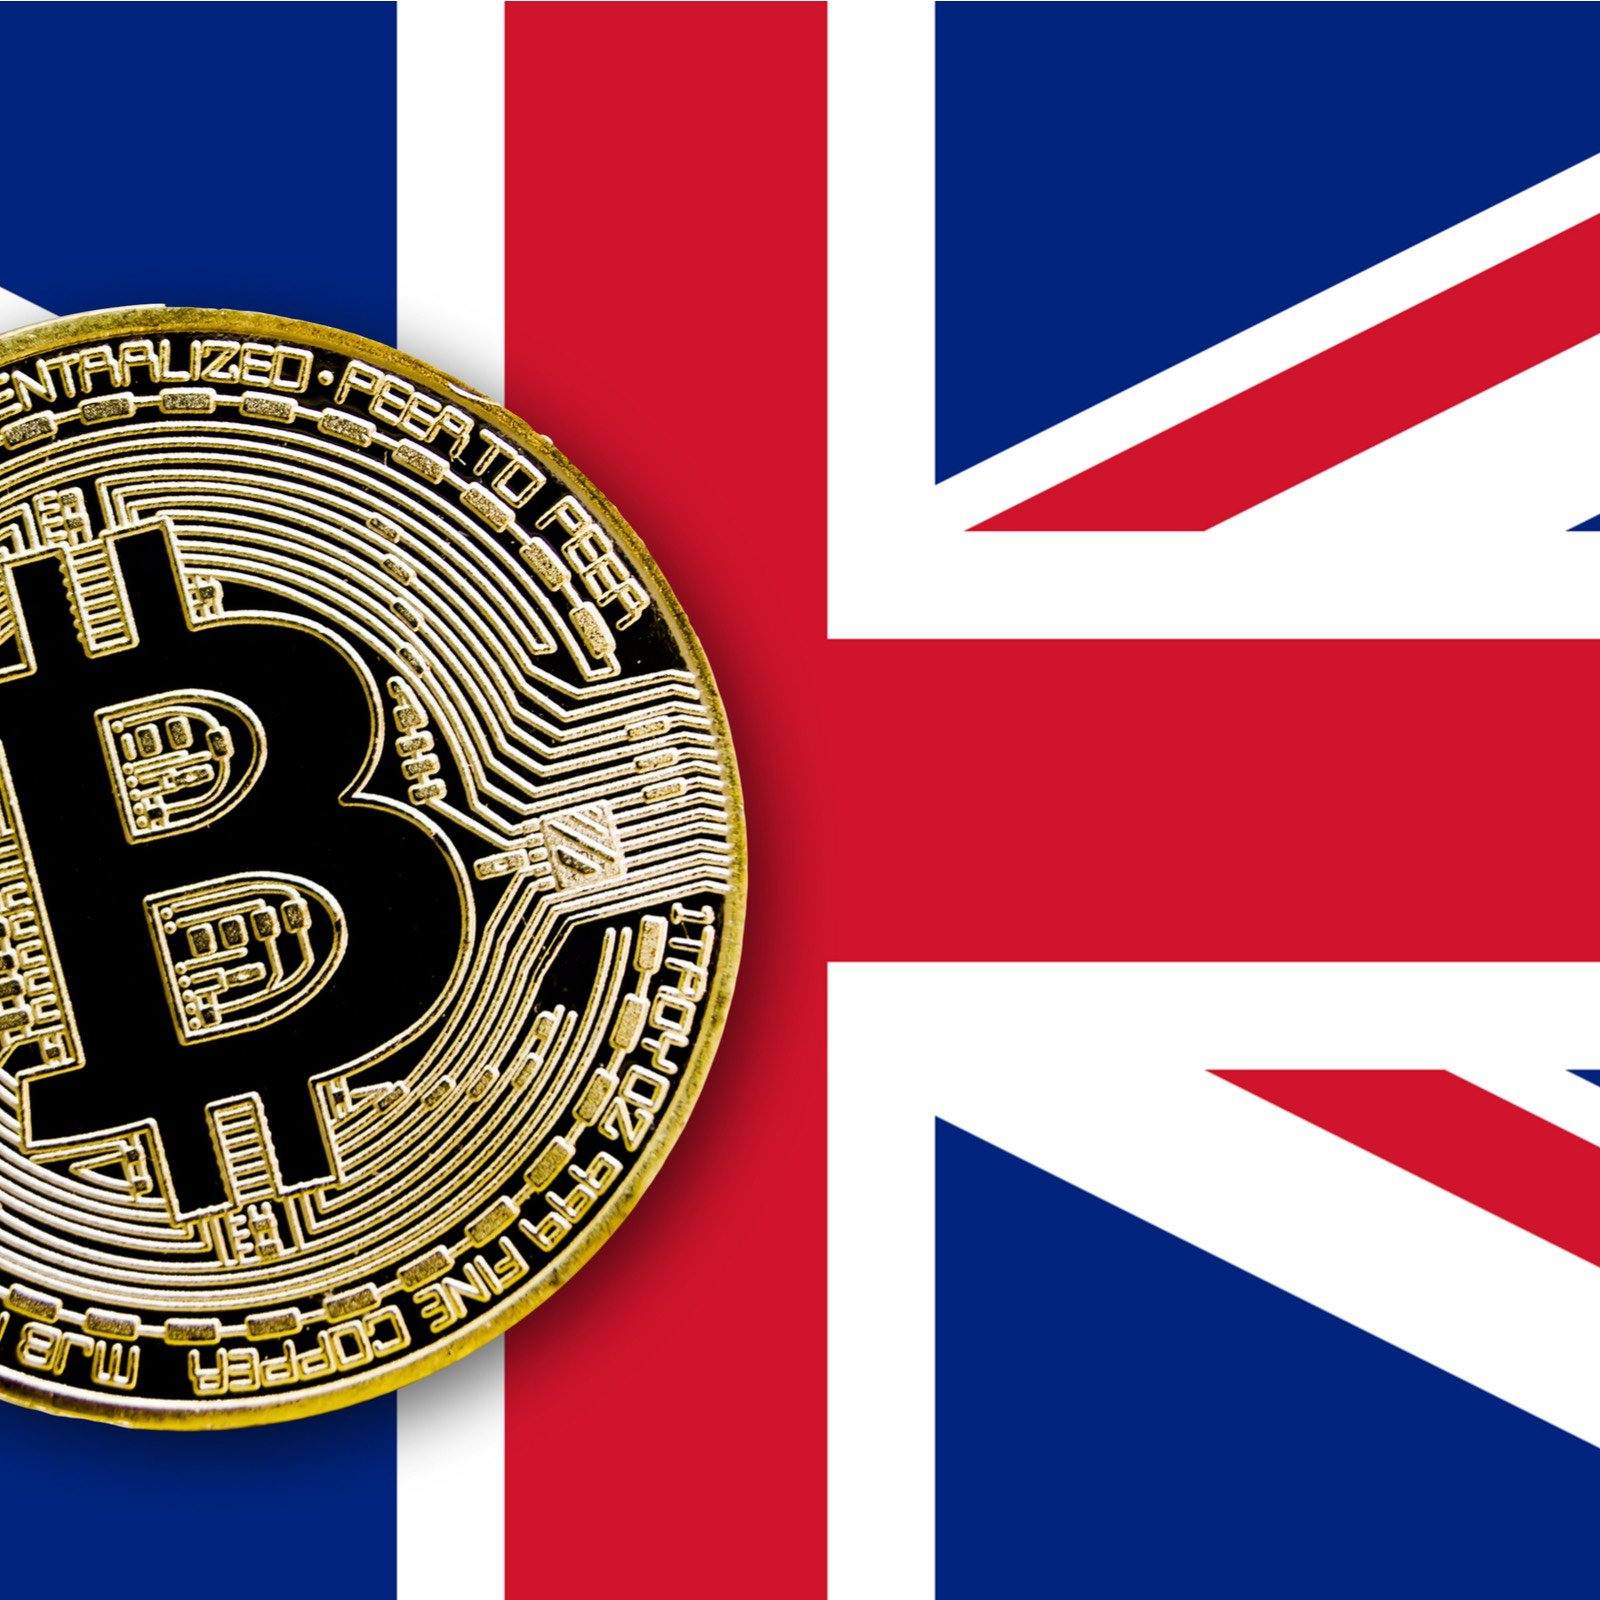 3minsdailysome of the best bitcoin quotes by renowned individuals in the worldebitcoinicstv